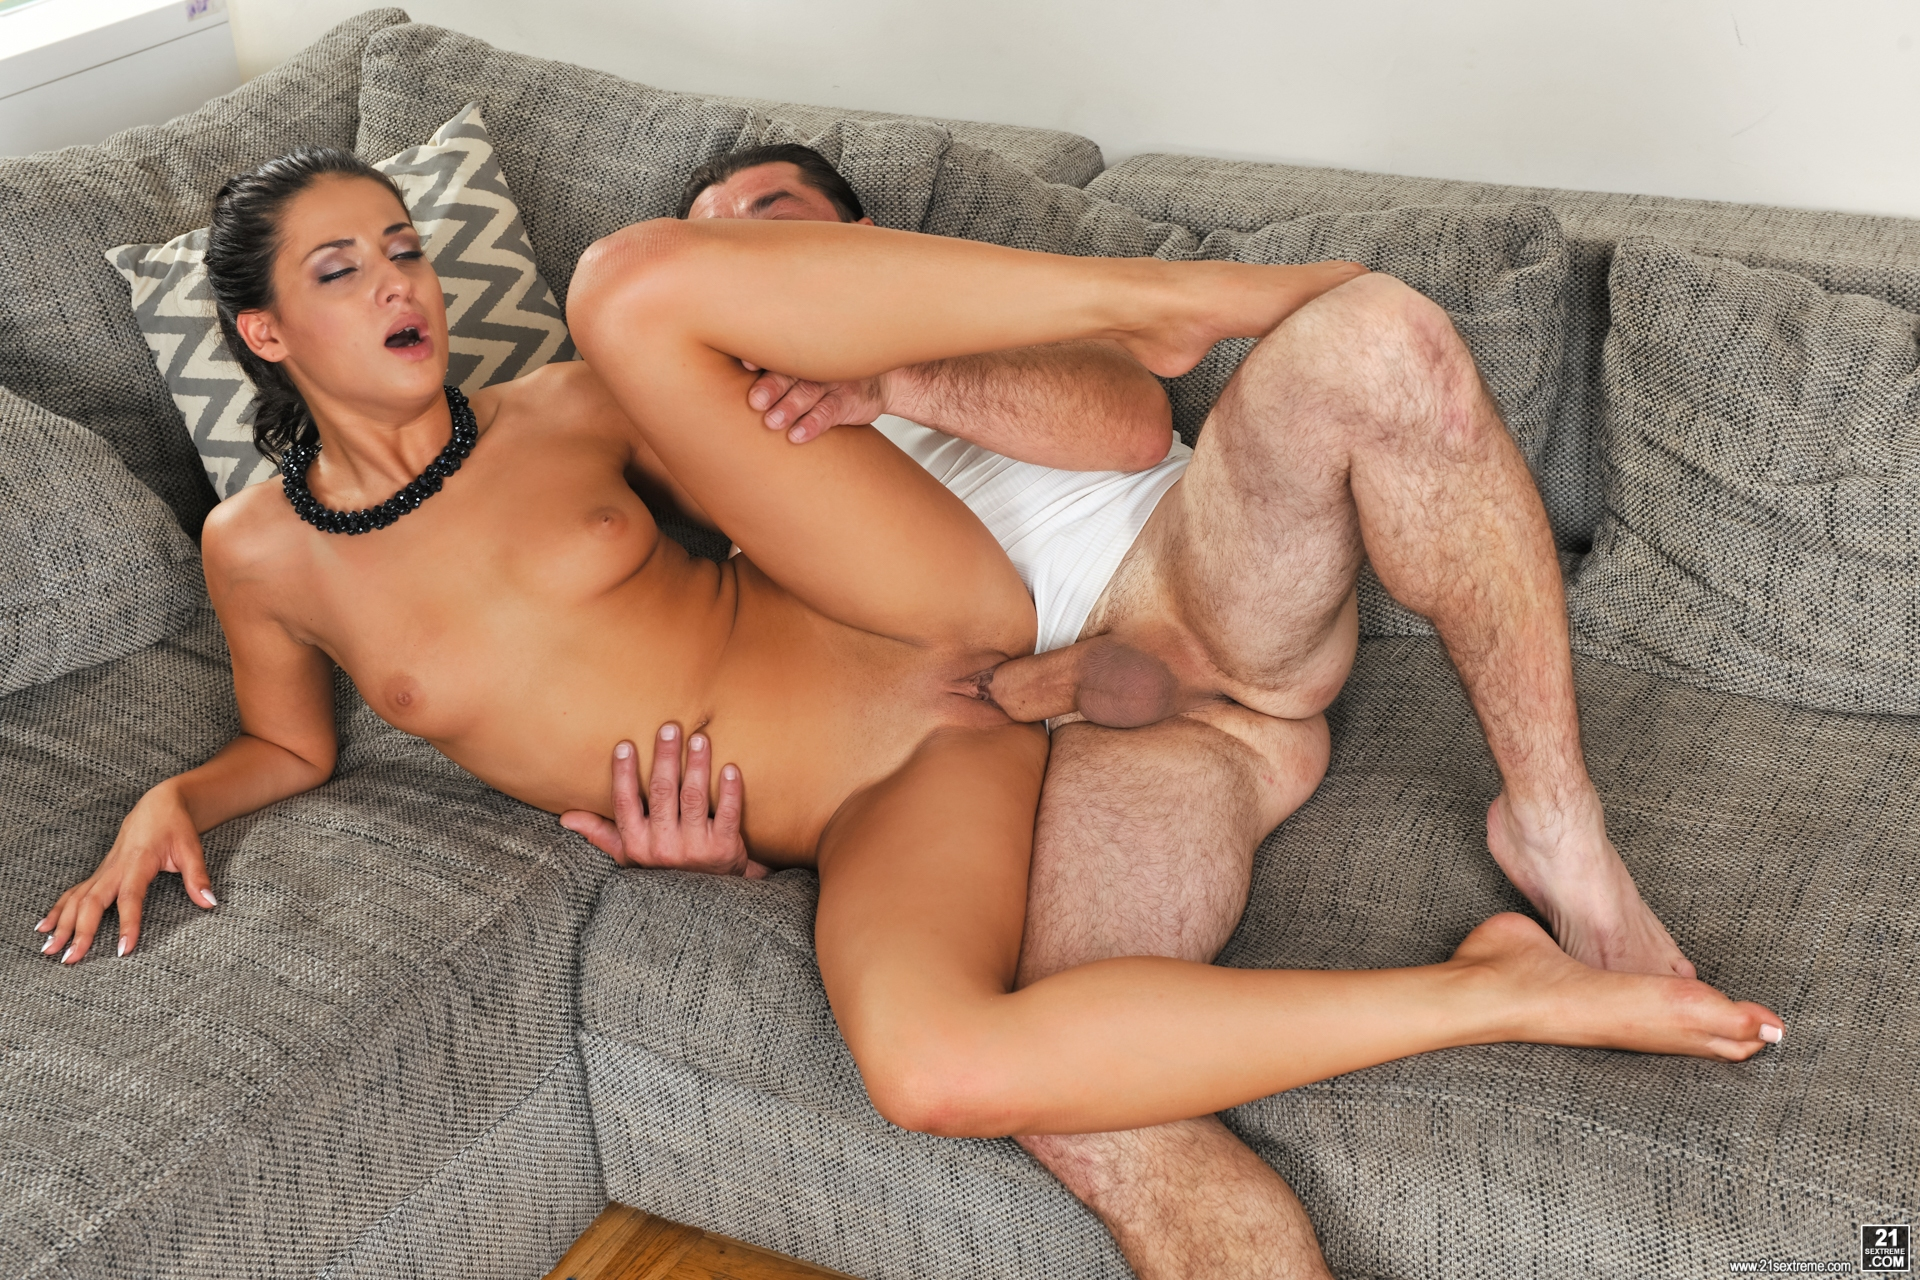 Coco de mal gets her holes filled up with jizz of creampie - 3 5